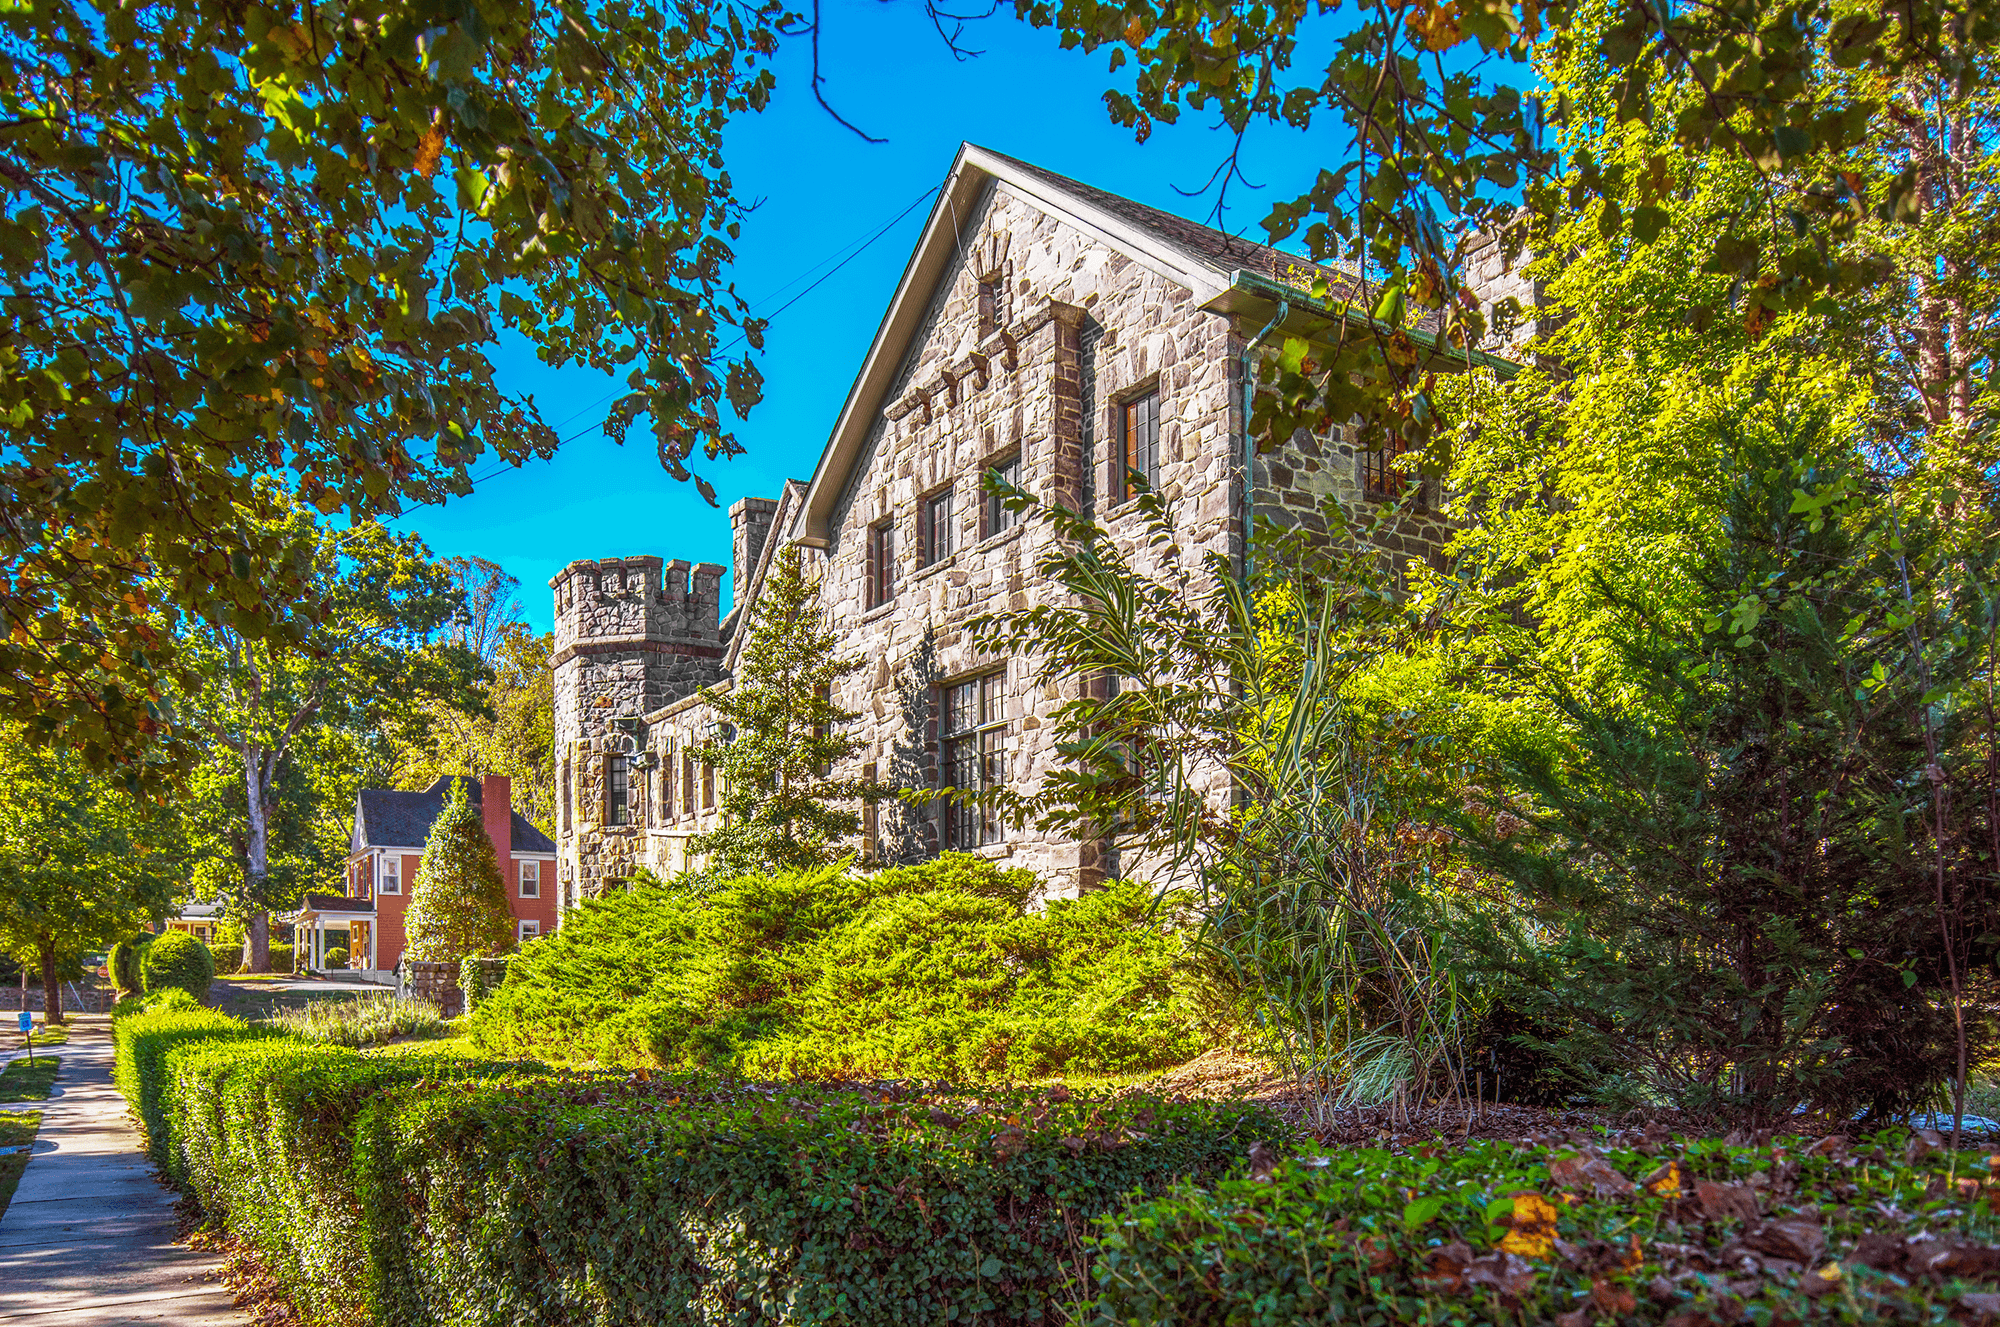 Homewood  is one of the unique buildings in the historic Montfort District, resembling more a castle or an English stone manor than a typical 1920s mansion.